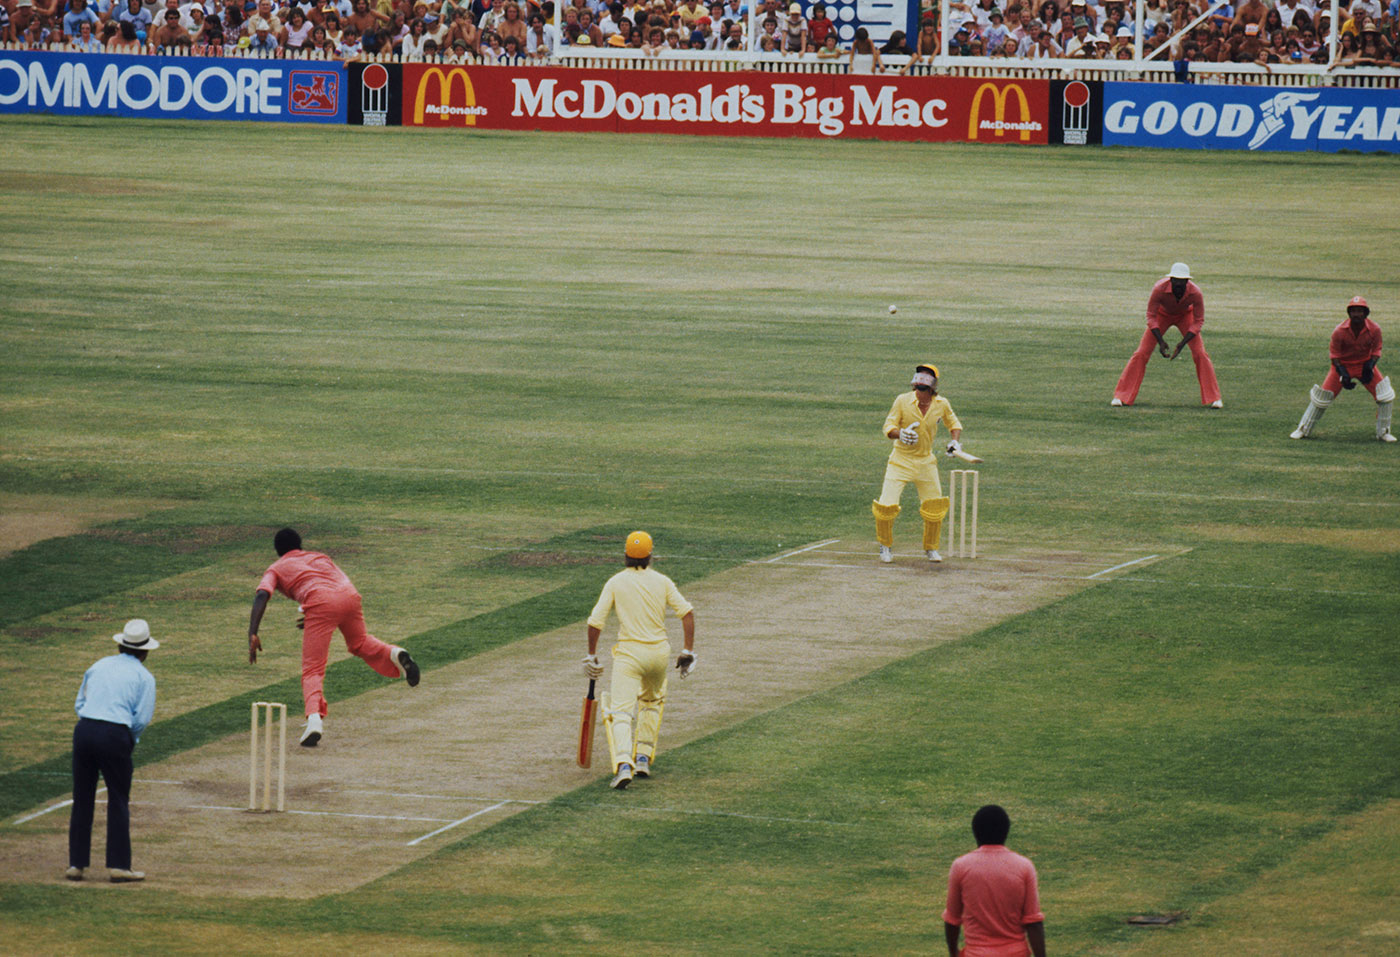 All about the fast bowling: Ian Davis takes on the WSC West Indies in 1979